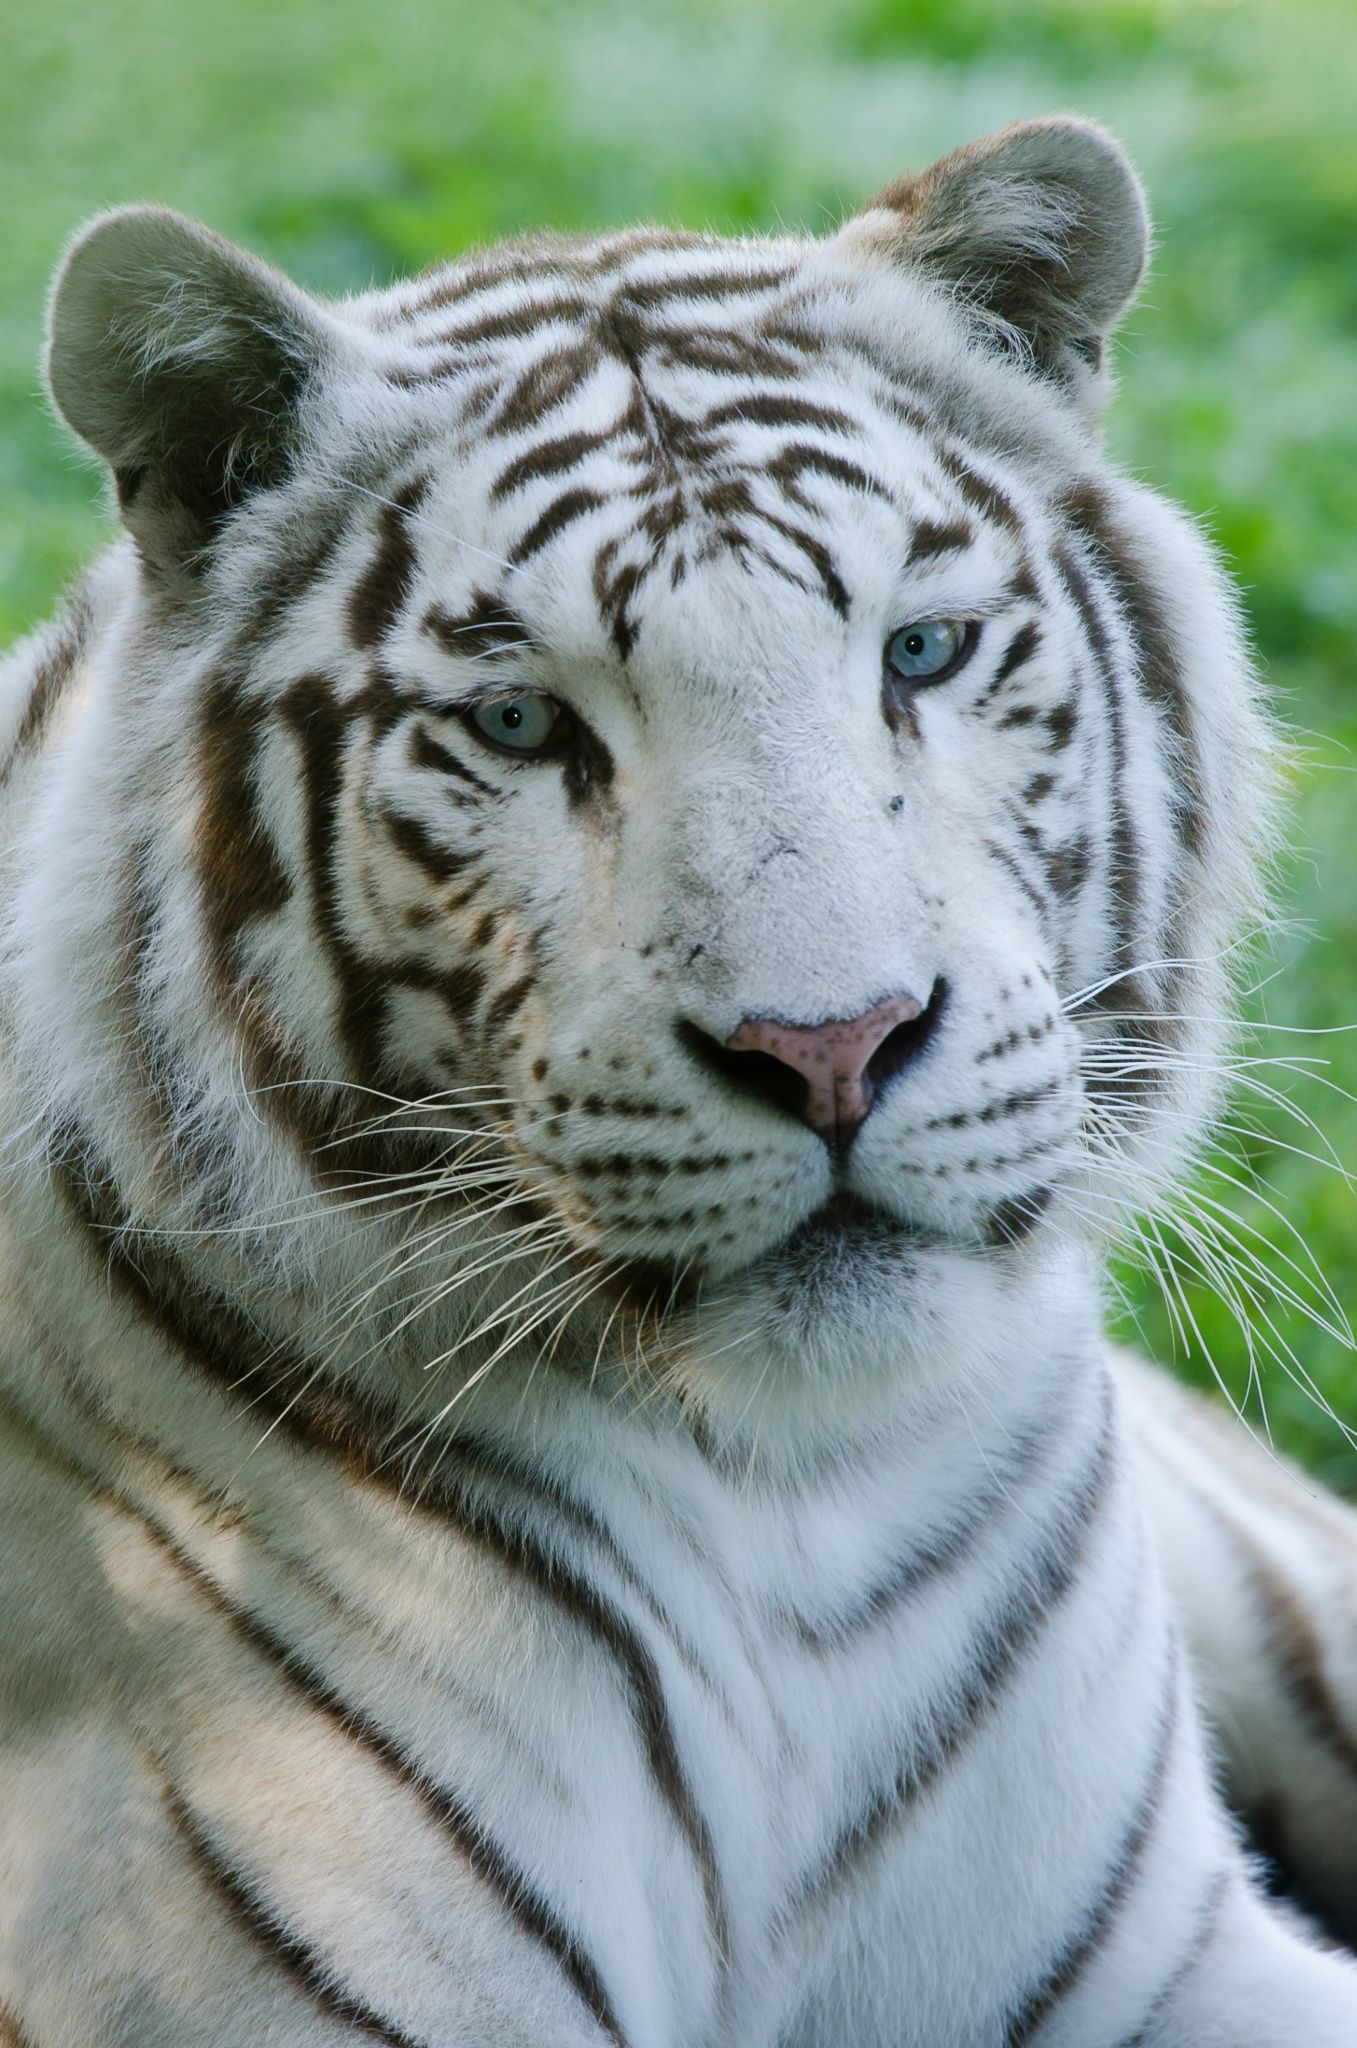 White Tiger - Blue eyes